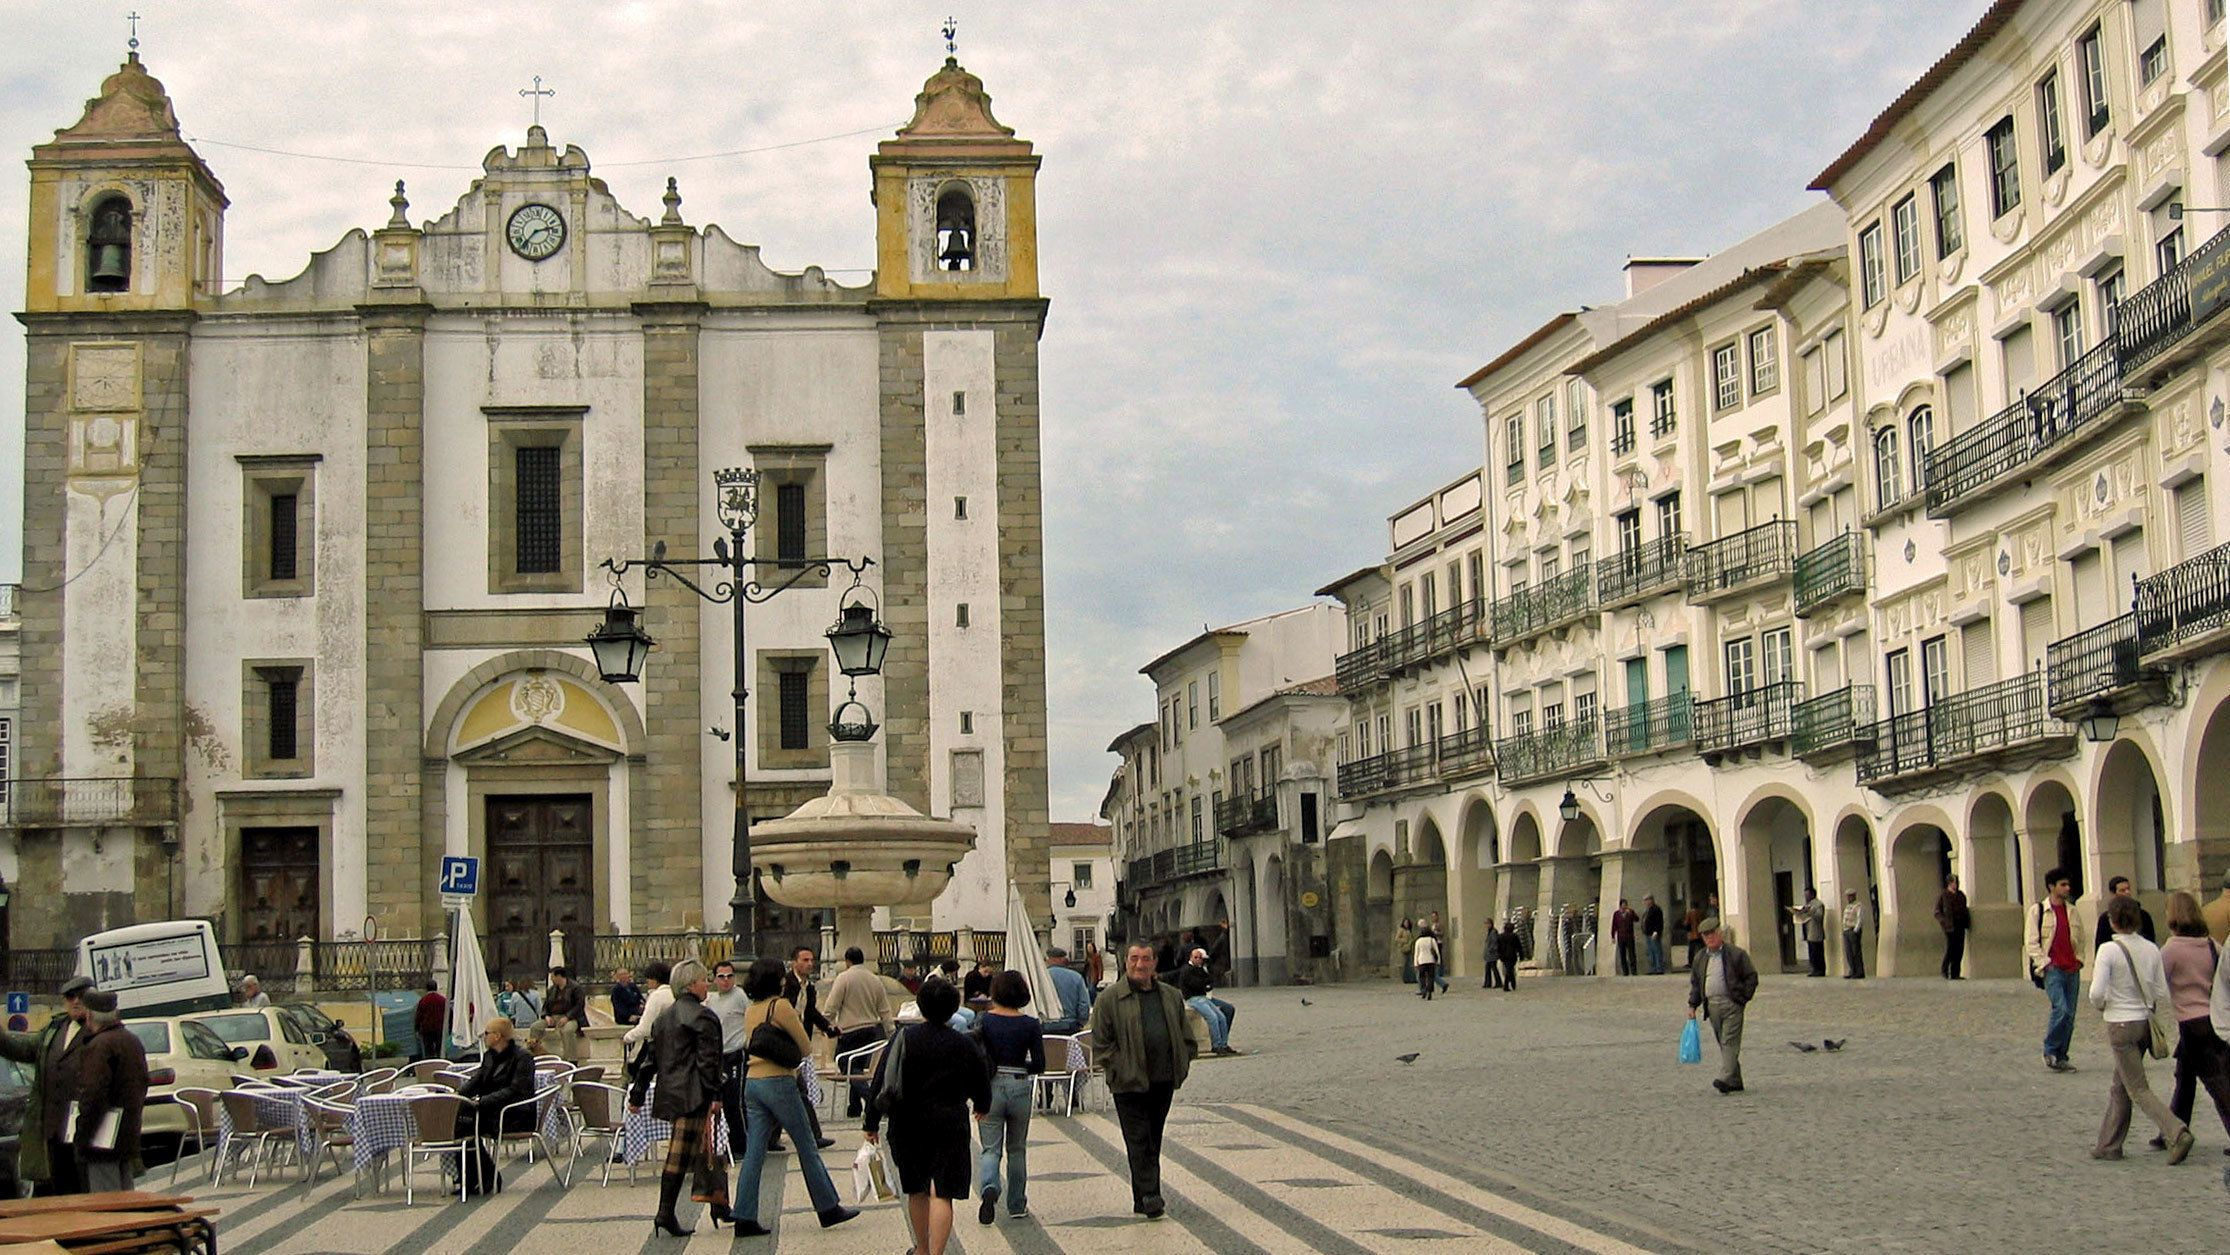 People walking through Giraldo Square in Evora